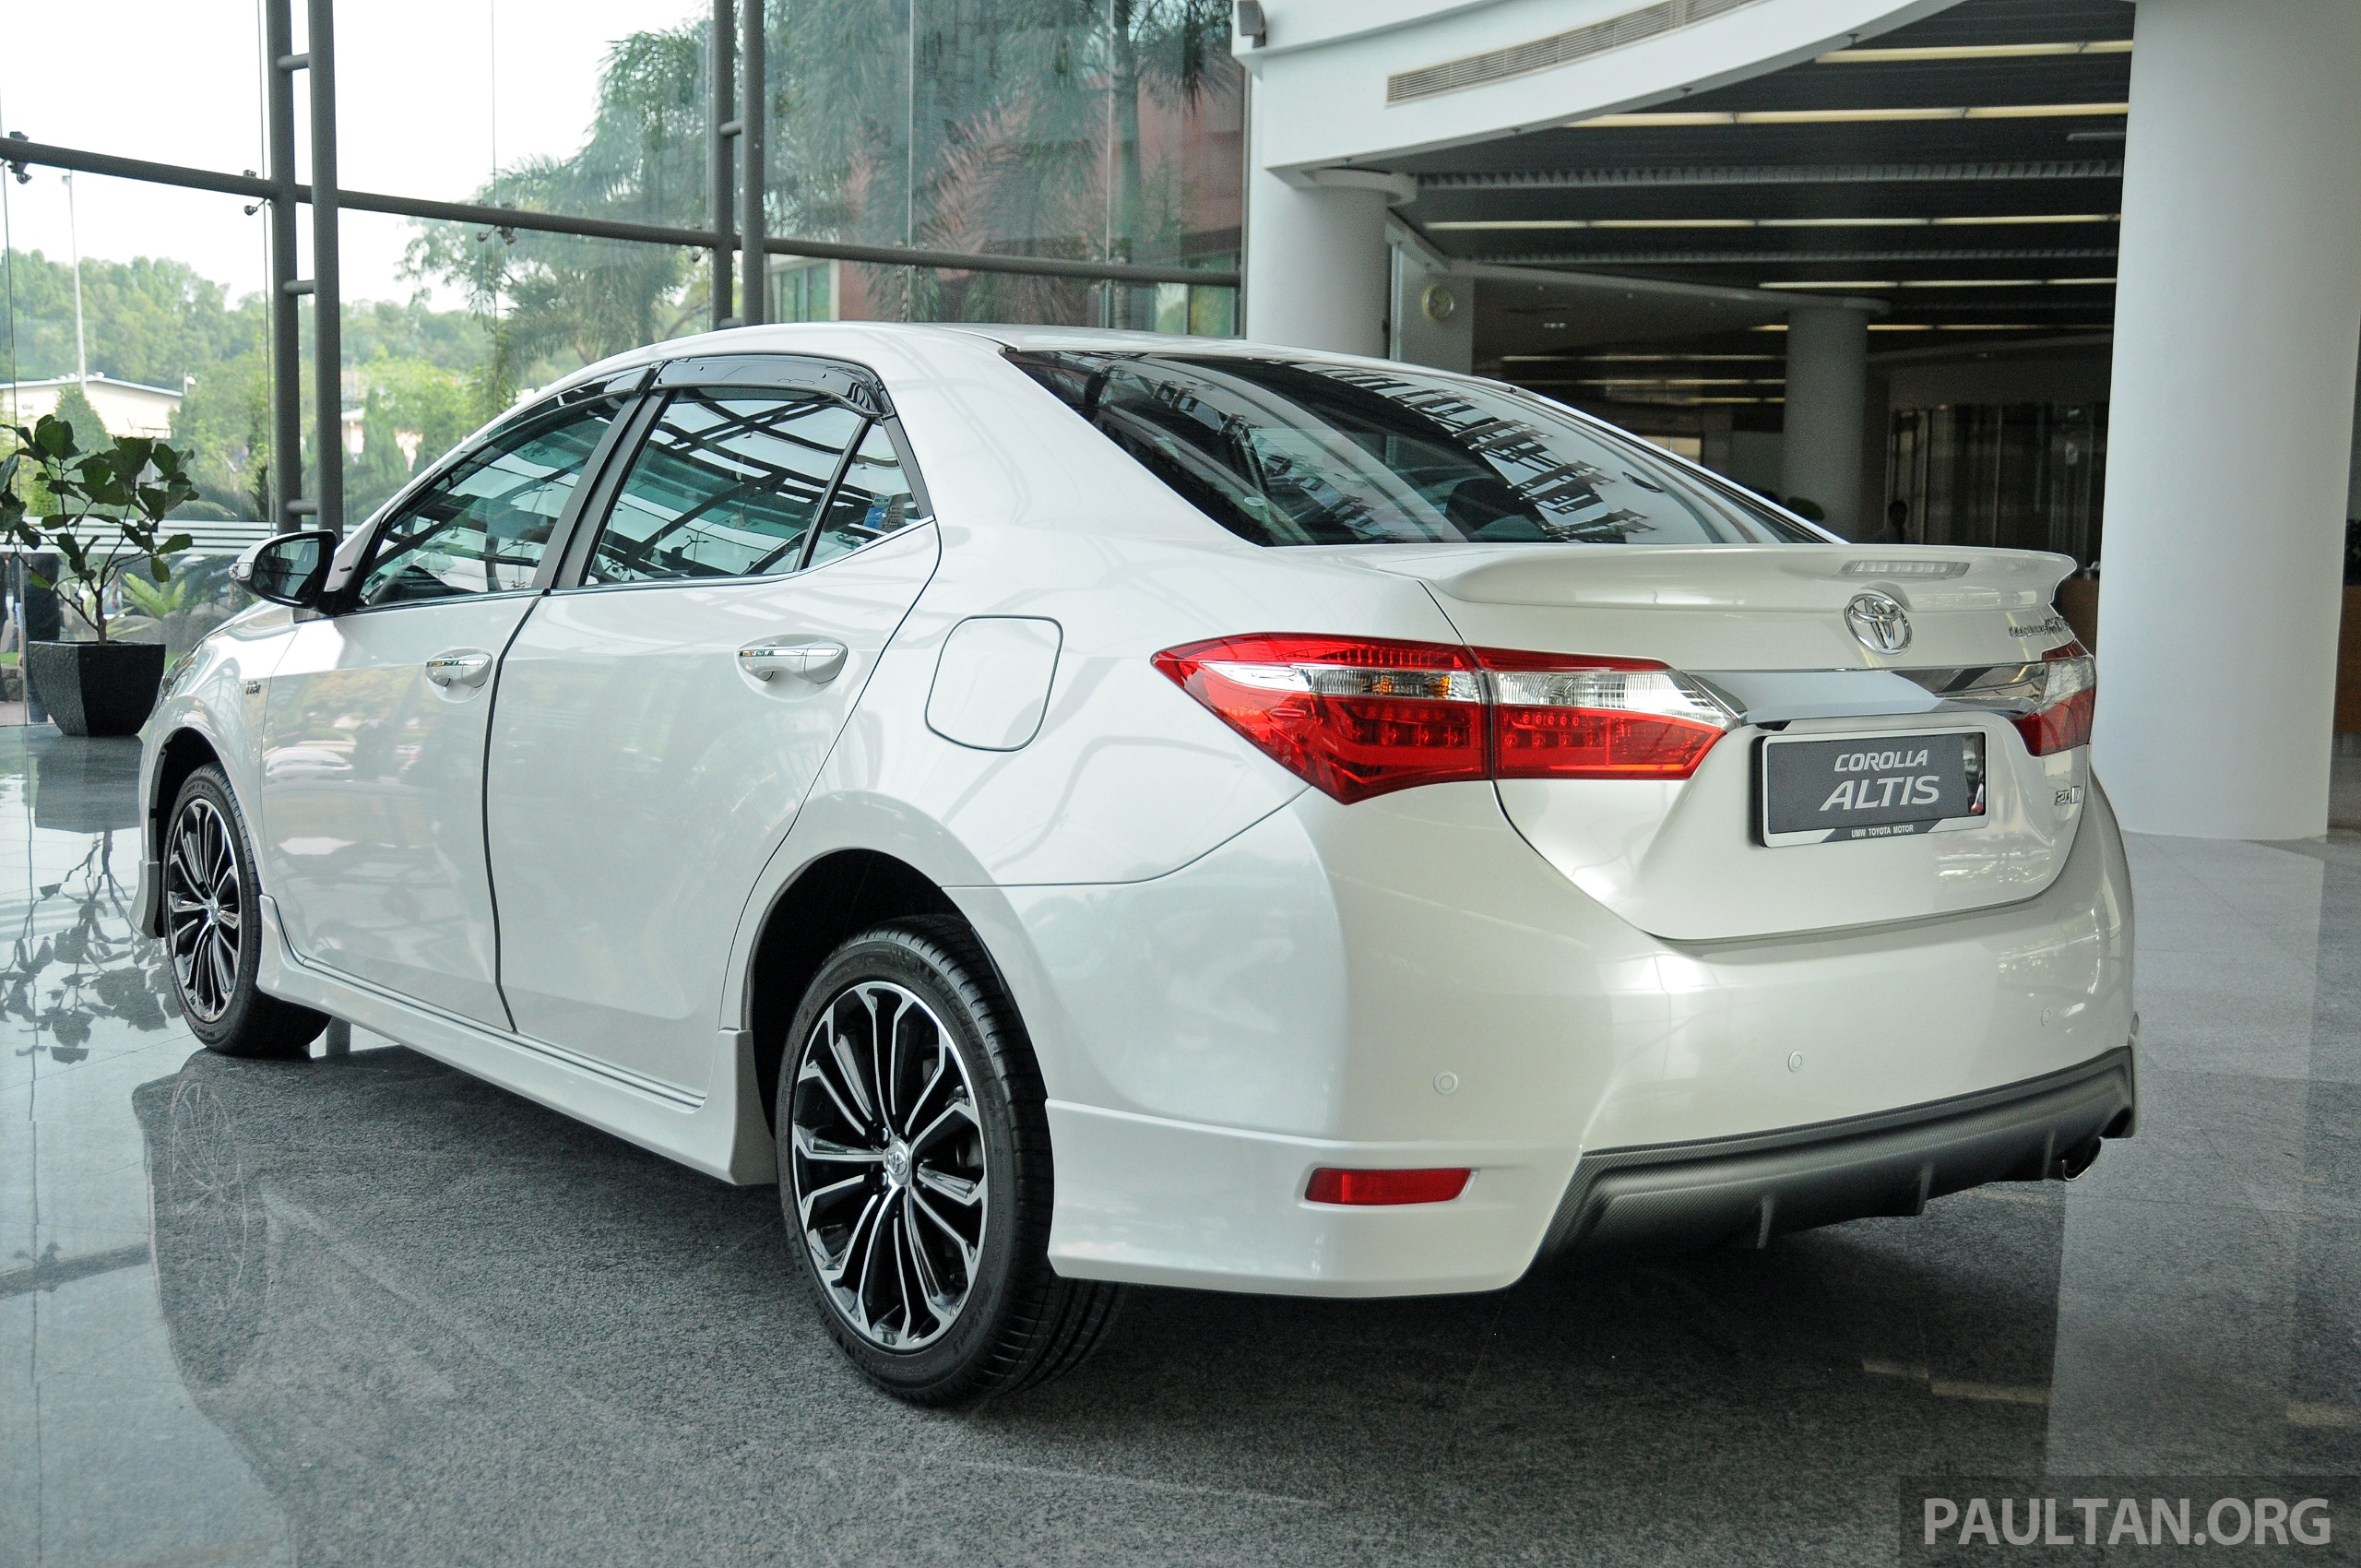 Bookings for 2014 toyota corolla altis open launch by may end